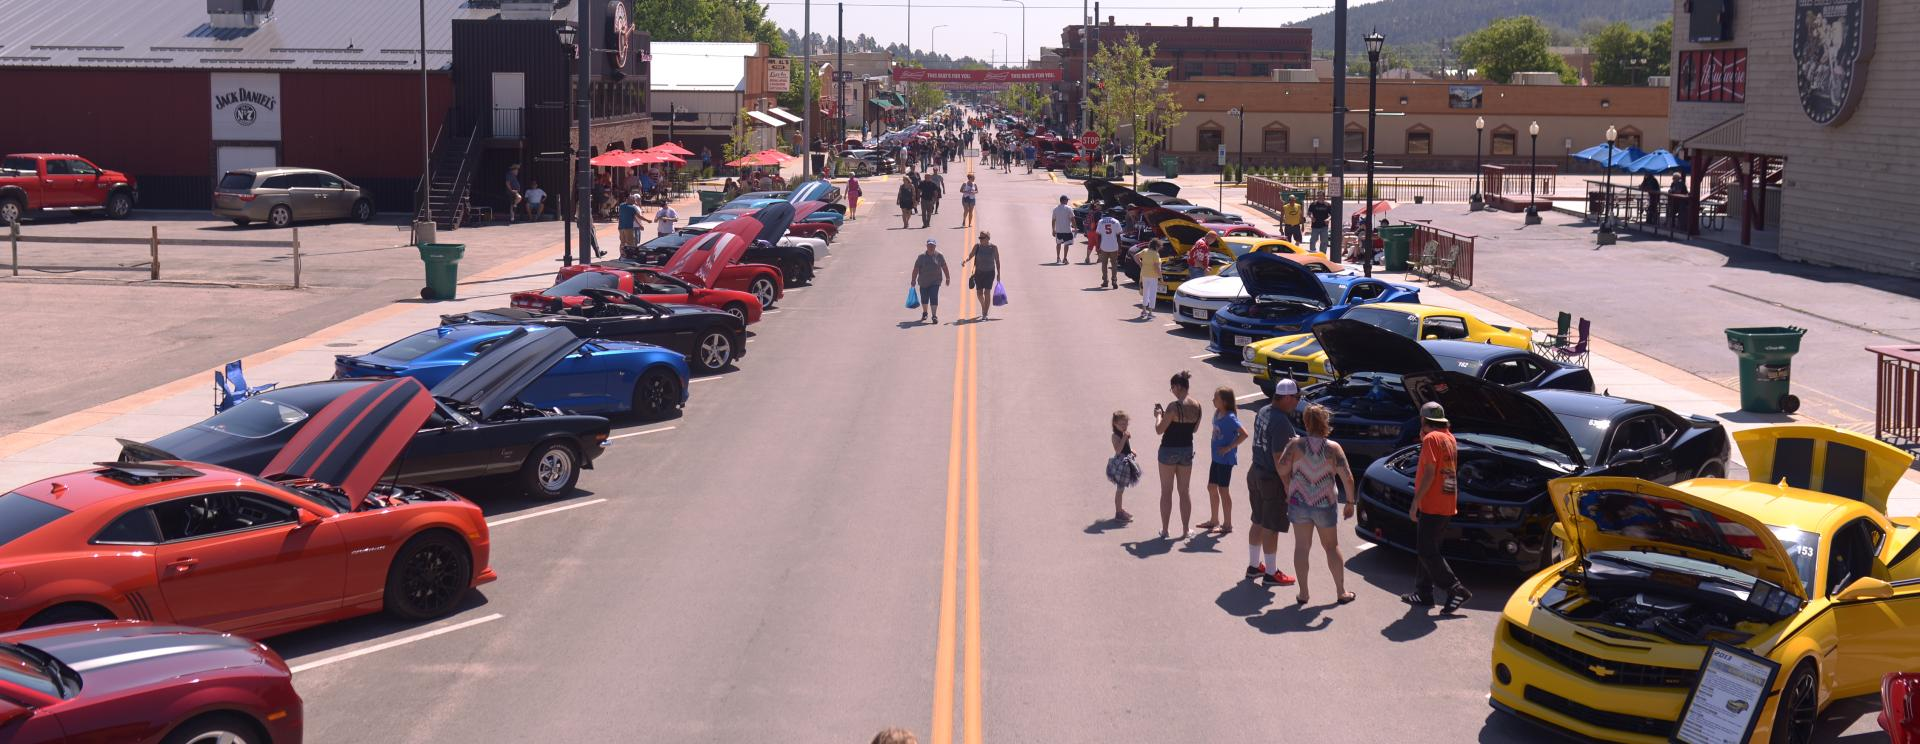 City of Sturgis - RALLY & EVENTS!